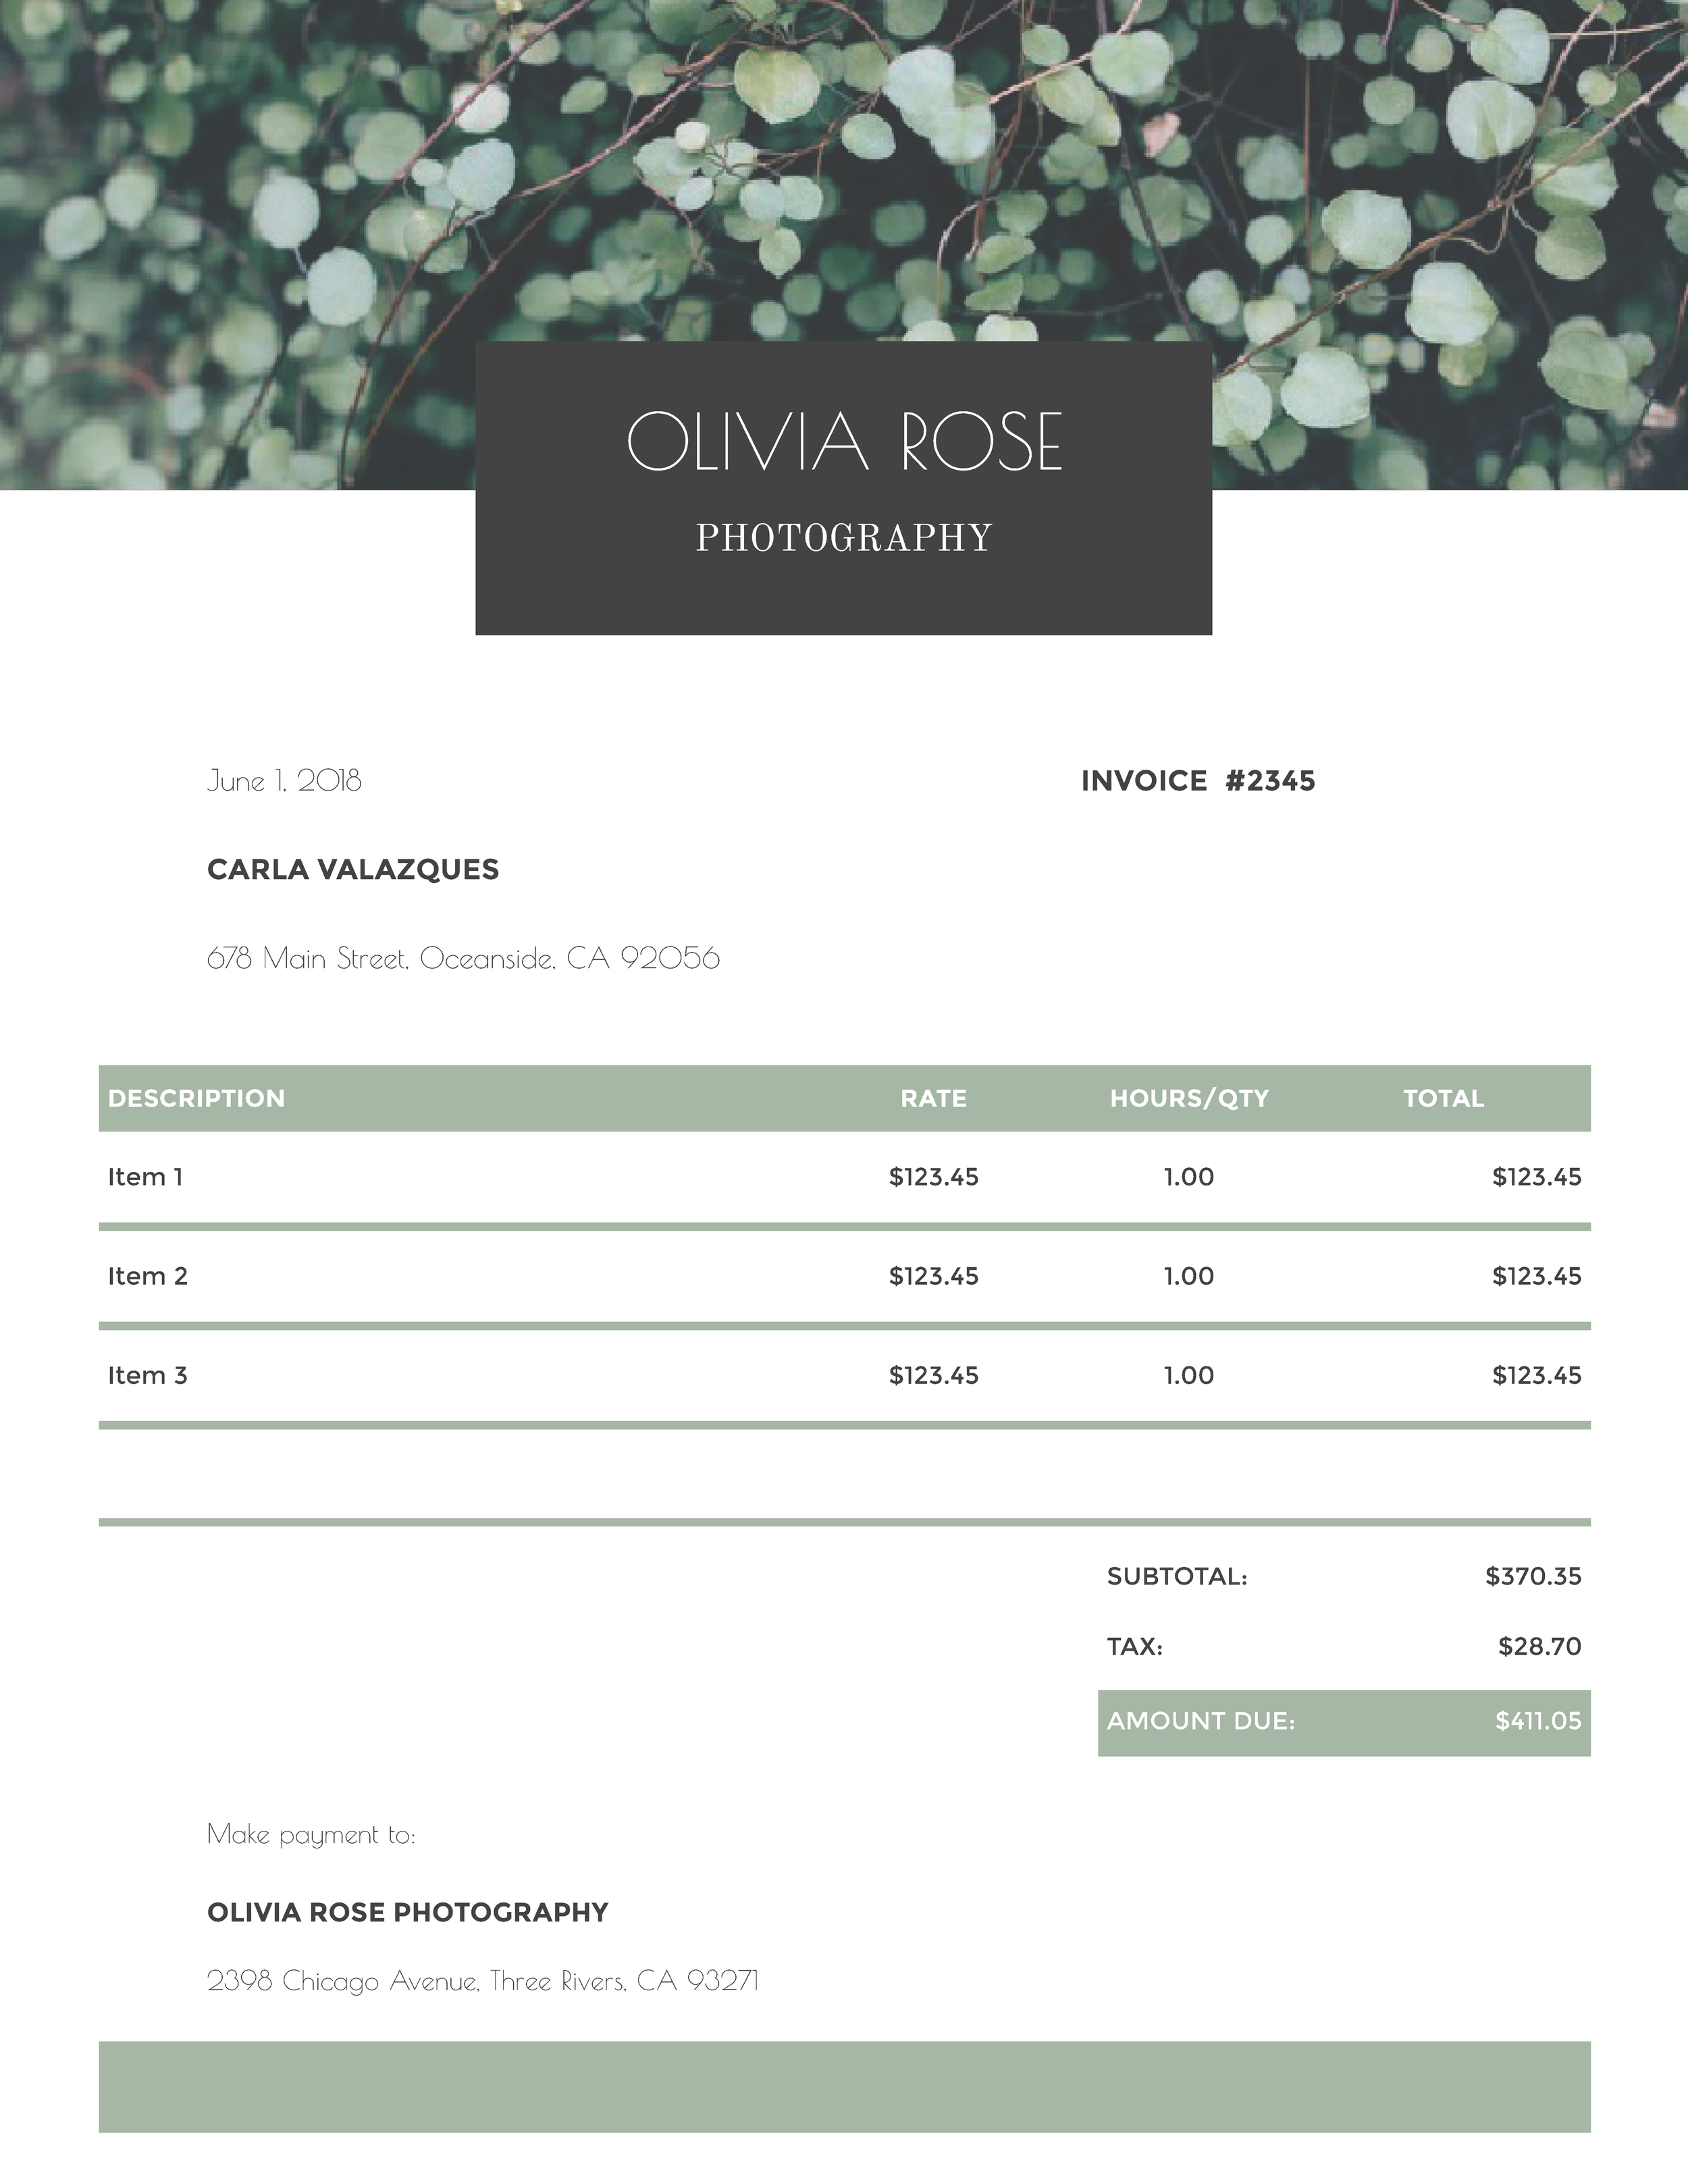 """Olivia Rose Photography"" Invoice Template from formfarm.io"